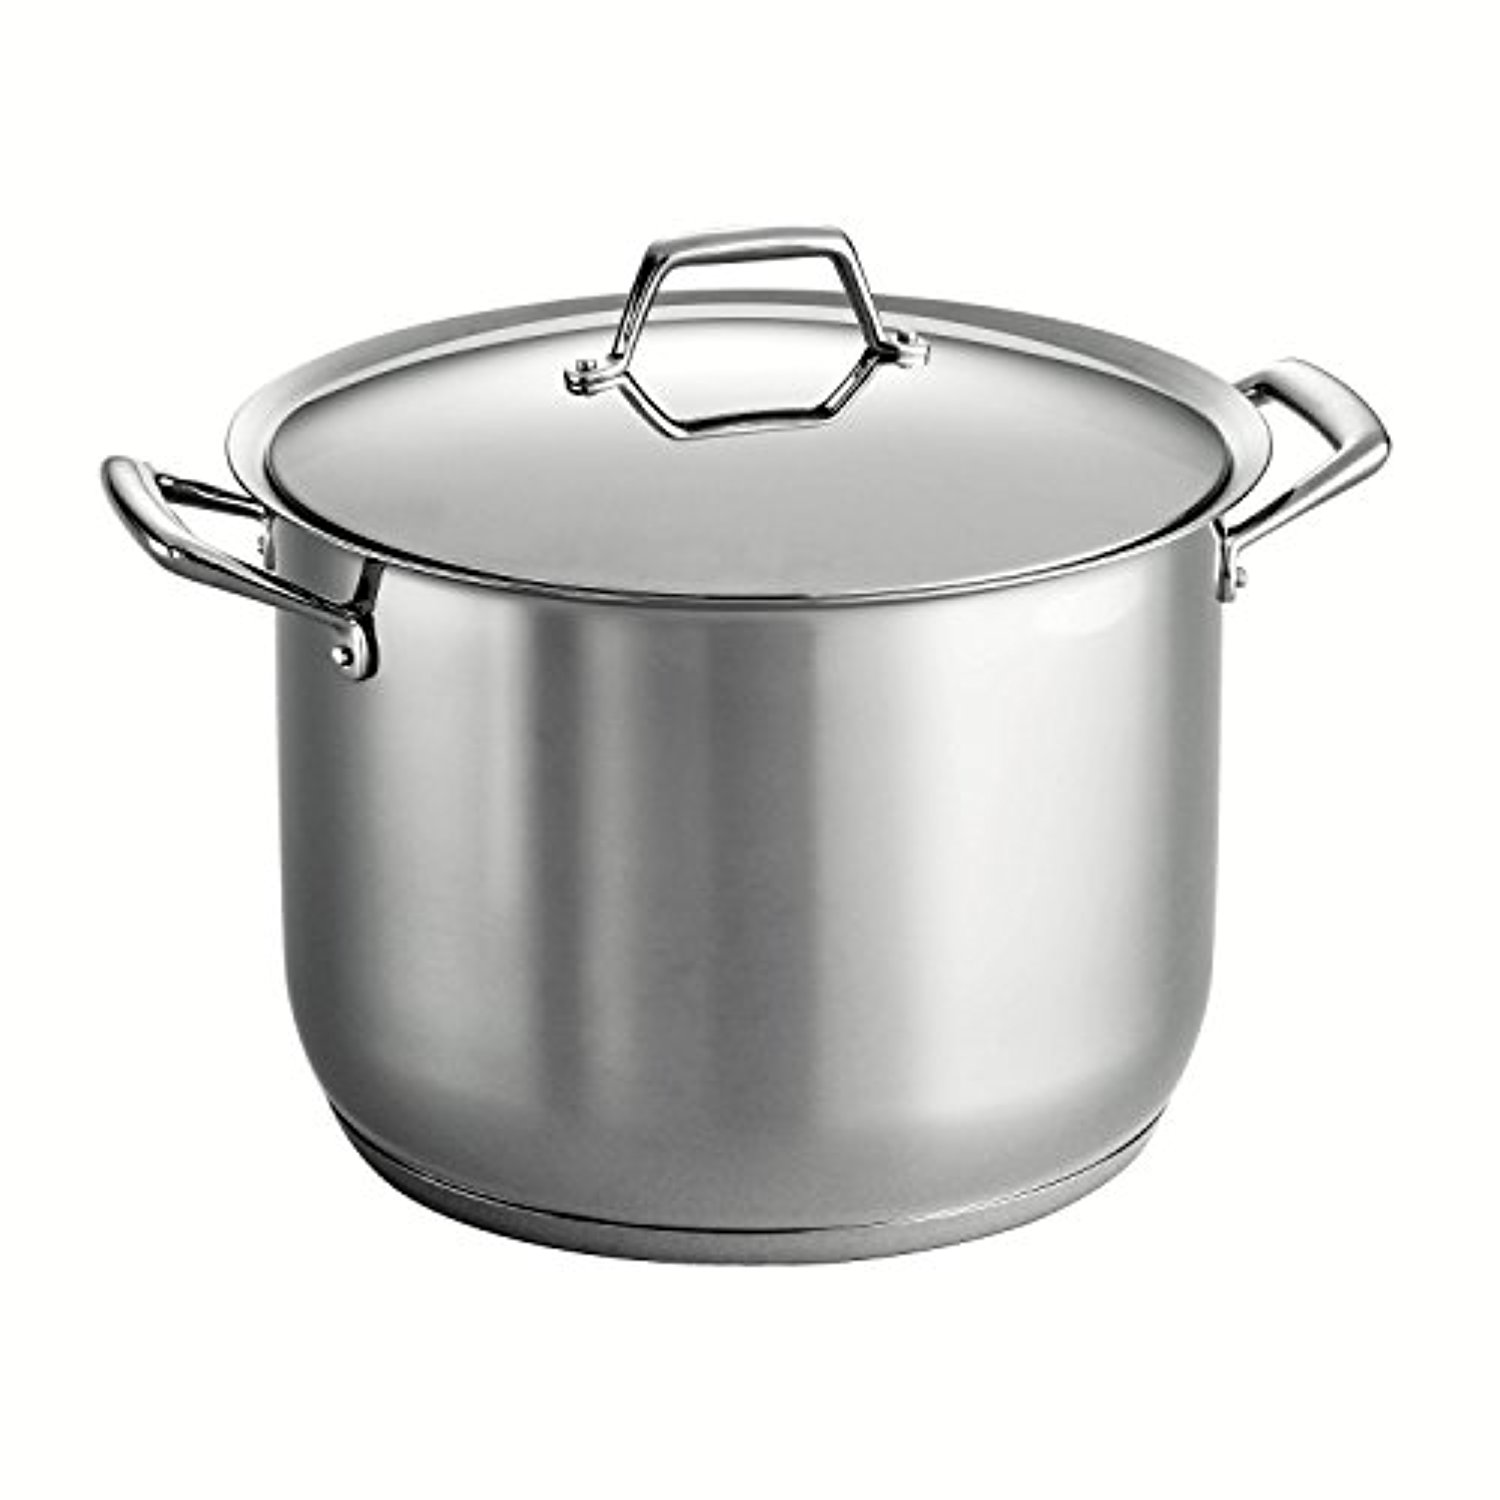 Tramontina Gourmet Prima 18/10 Stainless Steel Tri-Ply Base Covered Stock Pot, 16-Quart